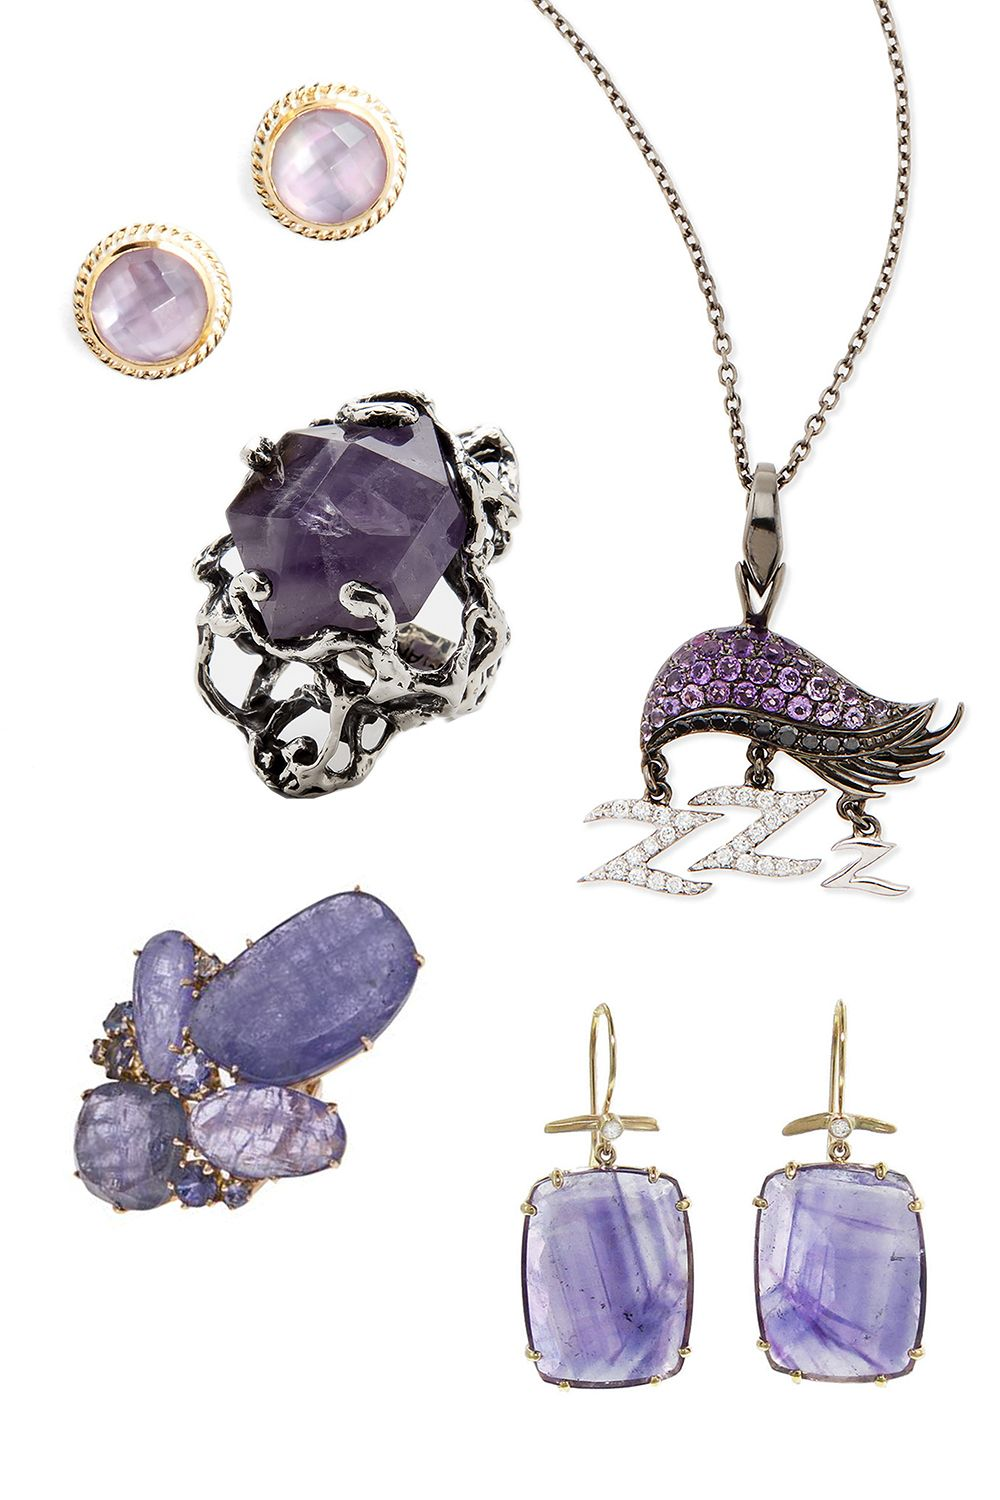 """<p>Anna Beck Stone Stud Earrings, $125; <a href=""""http://shop.nordstrom.com/s/4115758?origin=category-personalizedsort&contextualcategoryid=0&fashionColor=Amethyst&resultback=1279"""">nordstrom.com</a></p><p class=""""MsoNormal"""">MANIAMANIA Immortals Ring, $395; <a href=""""http://www.themaniamania.com/shop/Rings/immortals-ring-10"""">themaniamania.com</a></p><p class=""""MsoNormal"""">Stephen Webster 18k Sloth Pendant Necklace, $3,950; <a href=""""http://www.bergdorfgoodman.com/Stephen-Webster-18K-Sloth-Pendant-Necklace-with-Diamonds-and-Amethyst-Stephen-Webster-/prod103690100___/p.prod?icid=&searchType=MAIN&rte=%2Fsearch.jsp%3FN%3D0%26Ntt%3DStephen%2BWebster%2B%2B%26_requestid%3D63426&eItemId=prod"""">bergdorfgoodman.com</a></p><p class=""""MsoNormal"""">Federica Rettore Amethyst Ring, $11,340; <a href=""""http://www.farfetch.com/shopping/women/federica-rettore-amethyst-ring-item-10400040.aspx?storeid=9467&ffref=lp_14_1_"""">farfetch.com</a></p><p class=""""MsoNormal"""">Jamie Joseph Emerald Cut Amethyst Earrings, $1,080; <a href=""""https://www.ylang23.com/product/emerald+cut+amethyst+earrings.do?sortby=newArrivals&refType=&from=Search"""">ylang23.com</a></p>"""